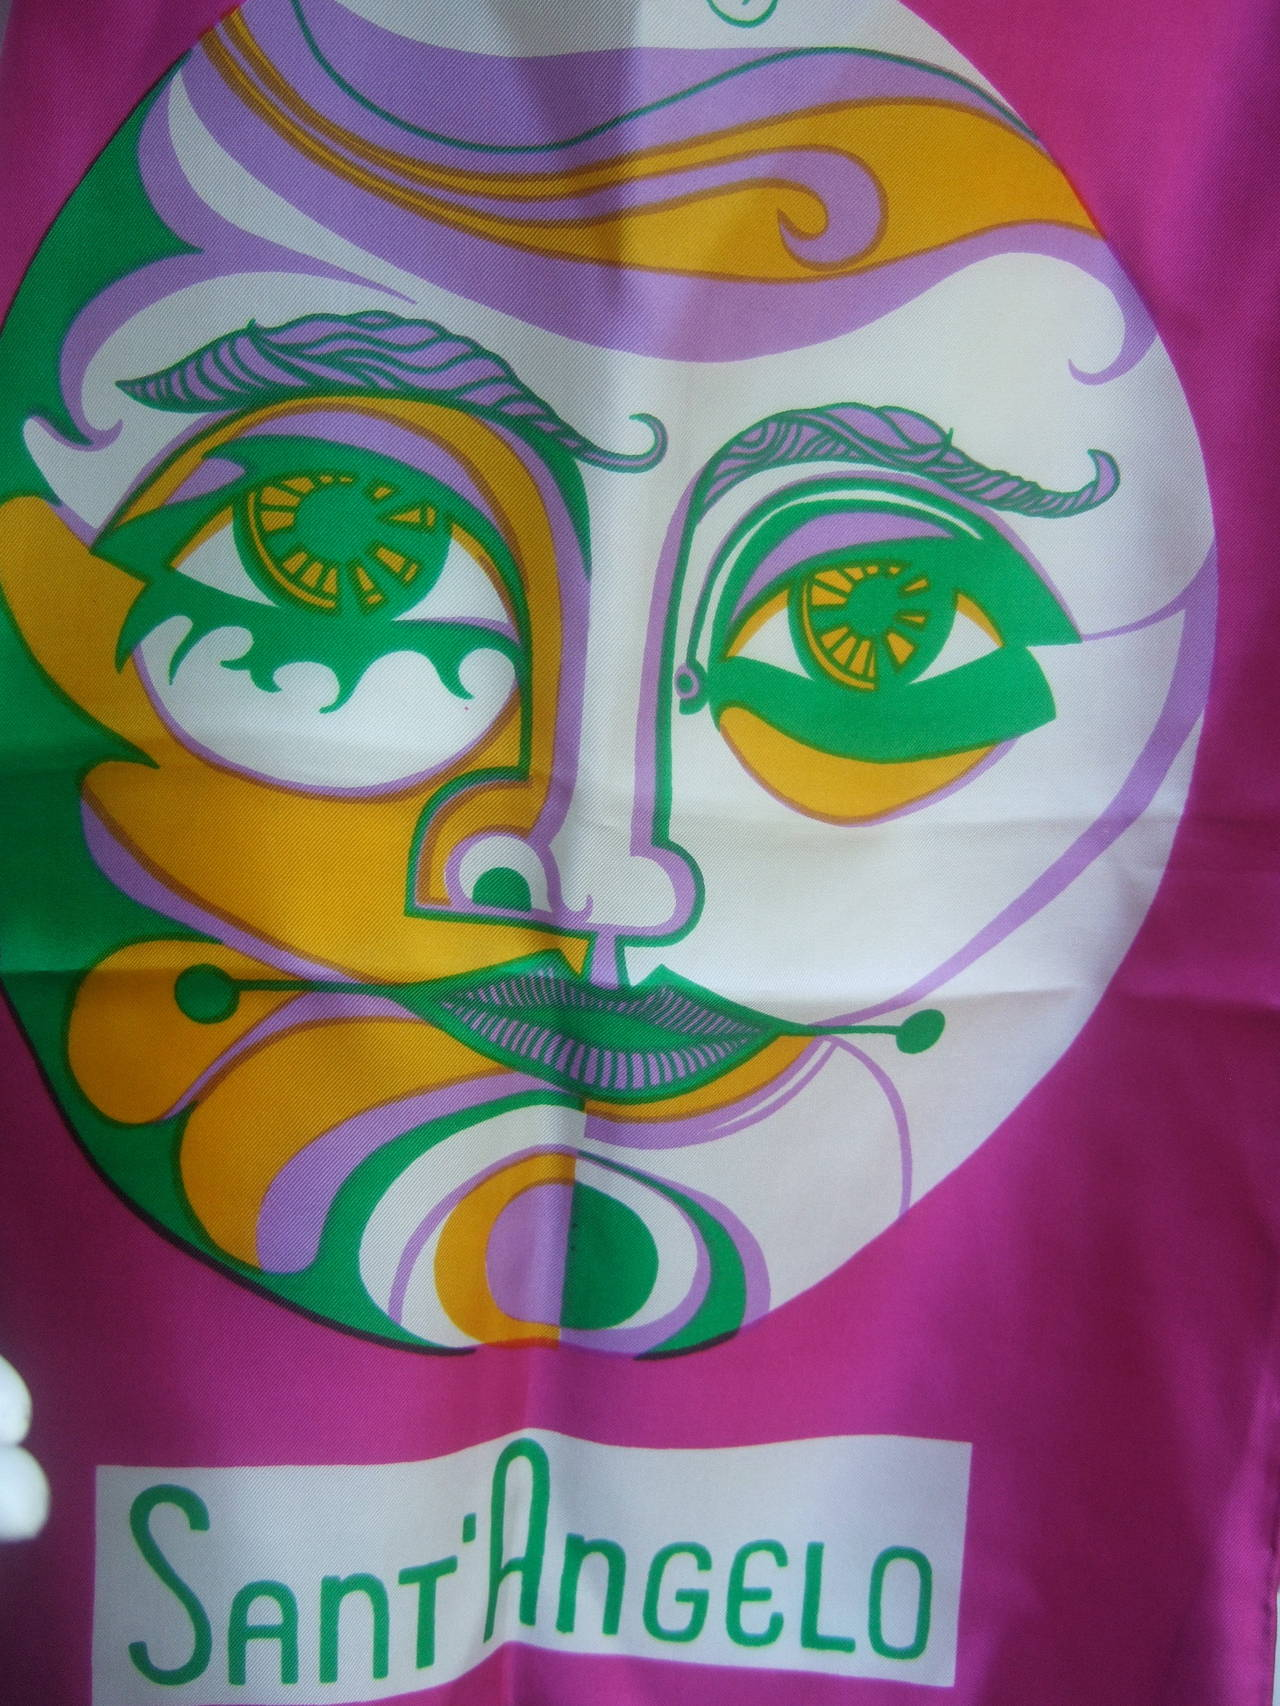 Sant' Angelo Moon & Stars Fuchsia Silk Oblong Scarf c 1970 In Excellent Condition For Sale In Santa Barbara, CA